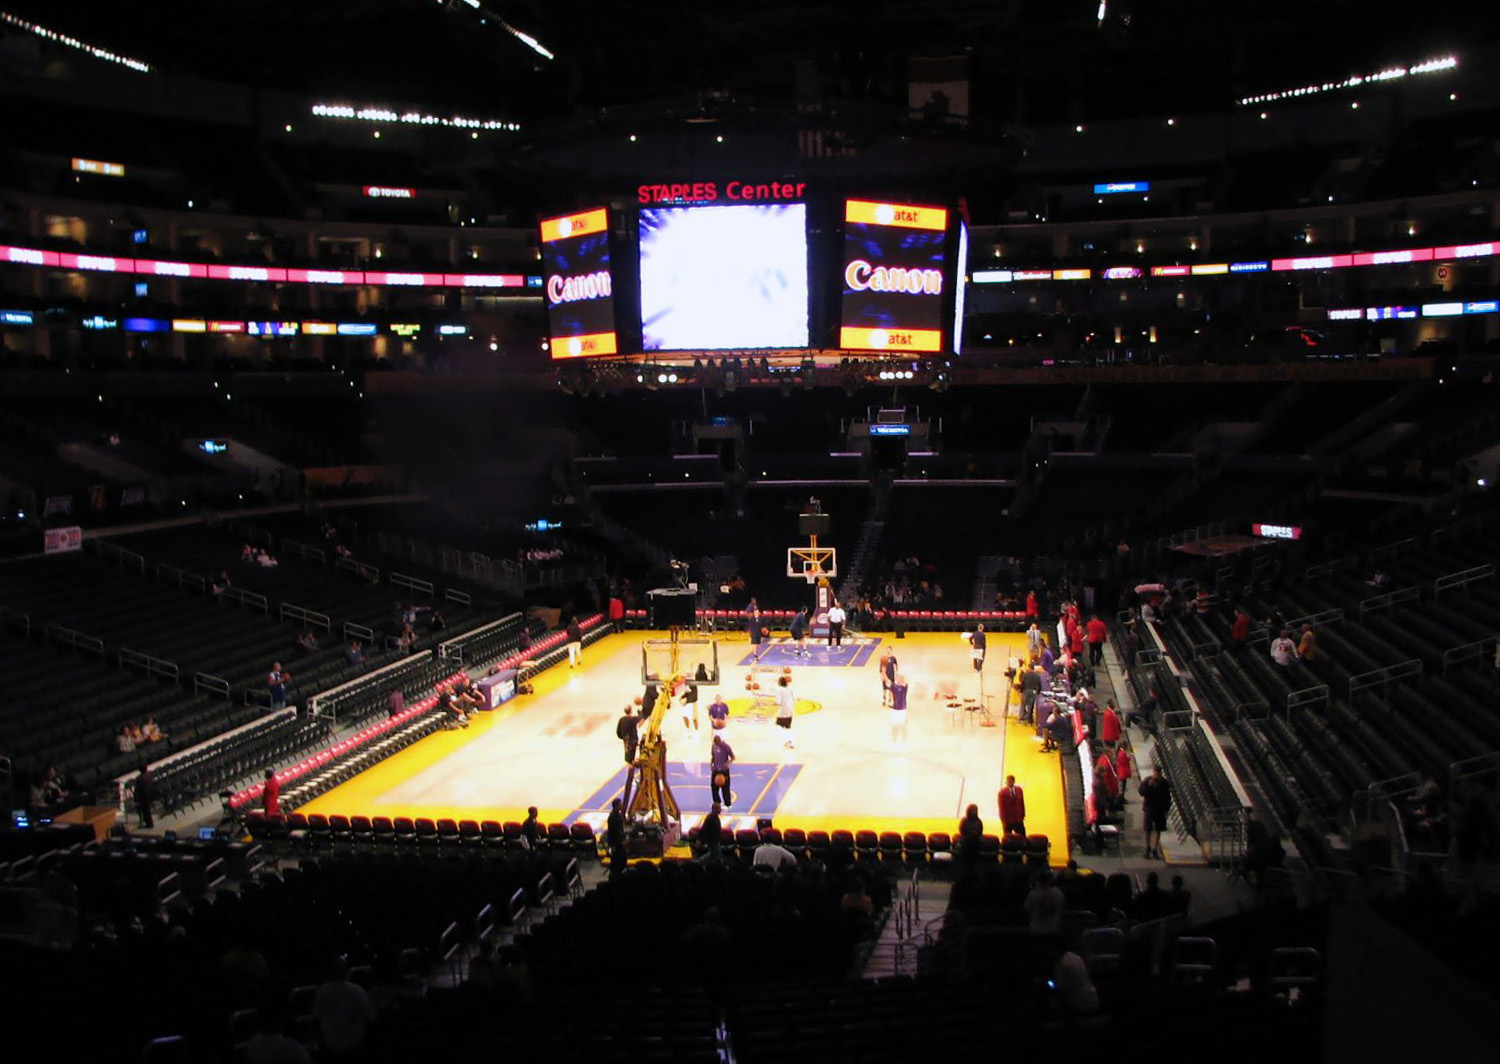 File:Staples Center Lakers.jpg